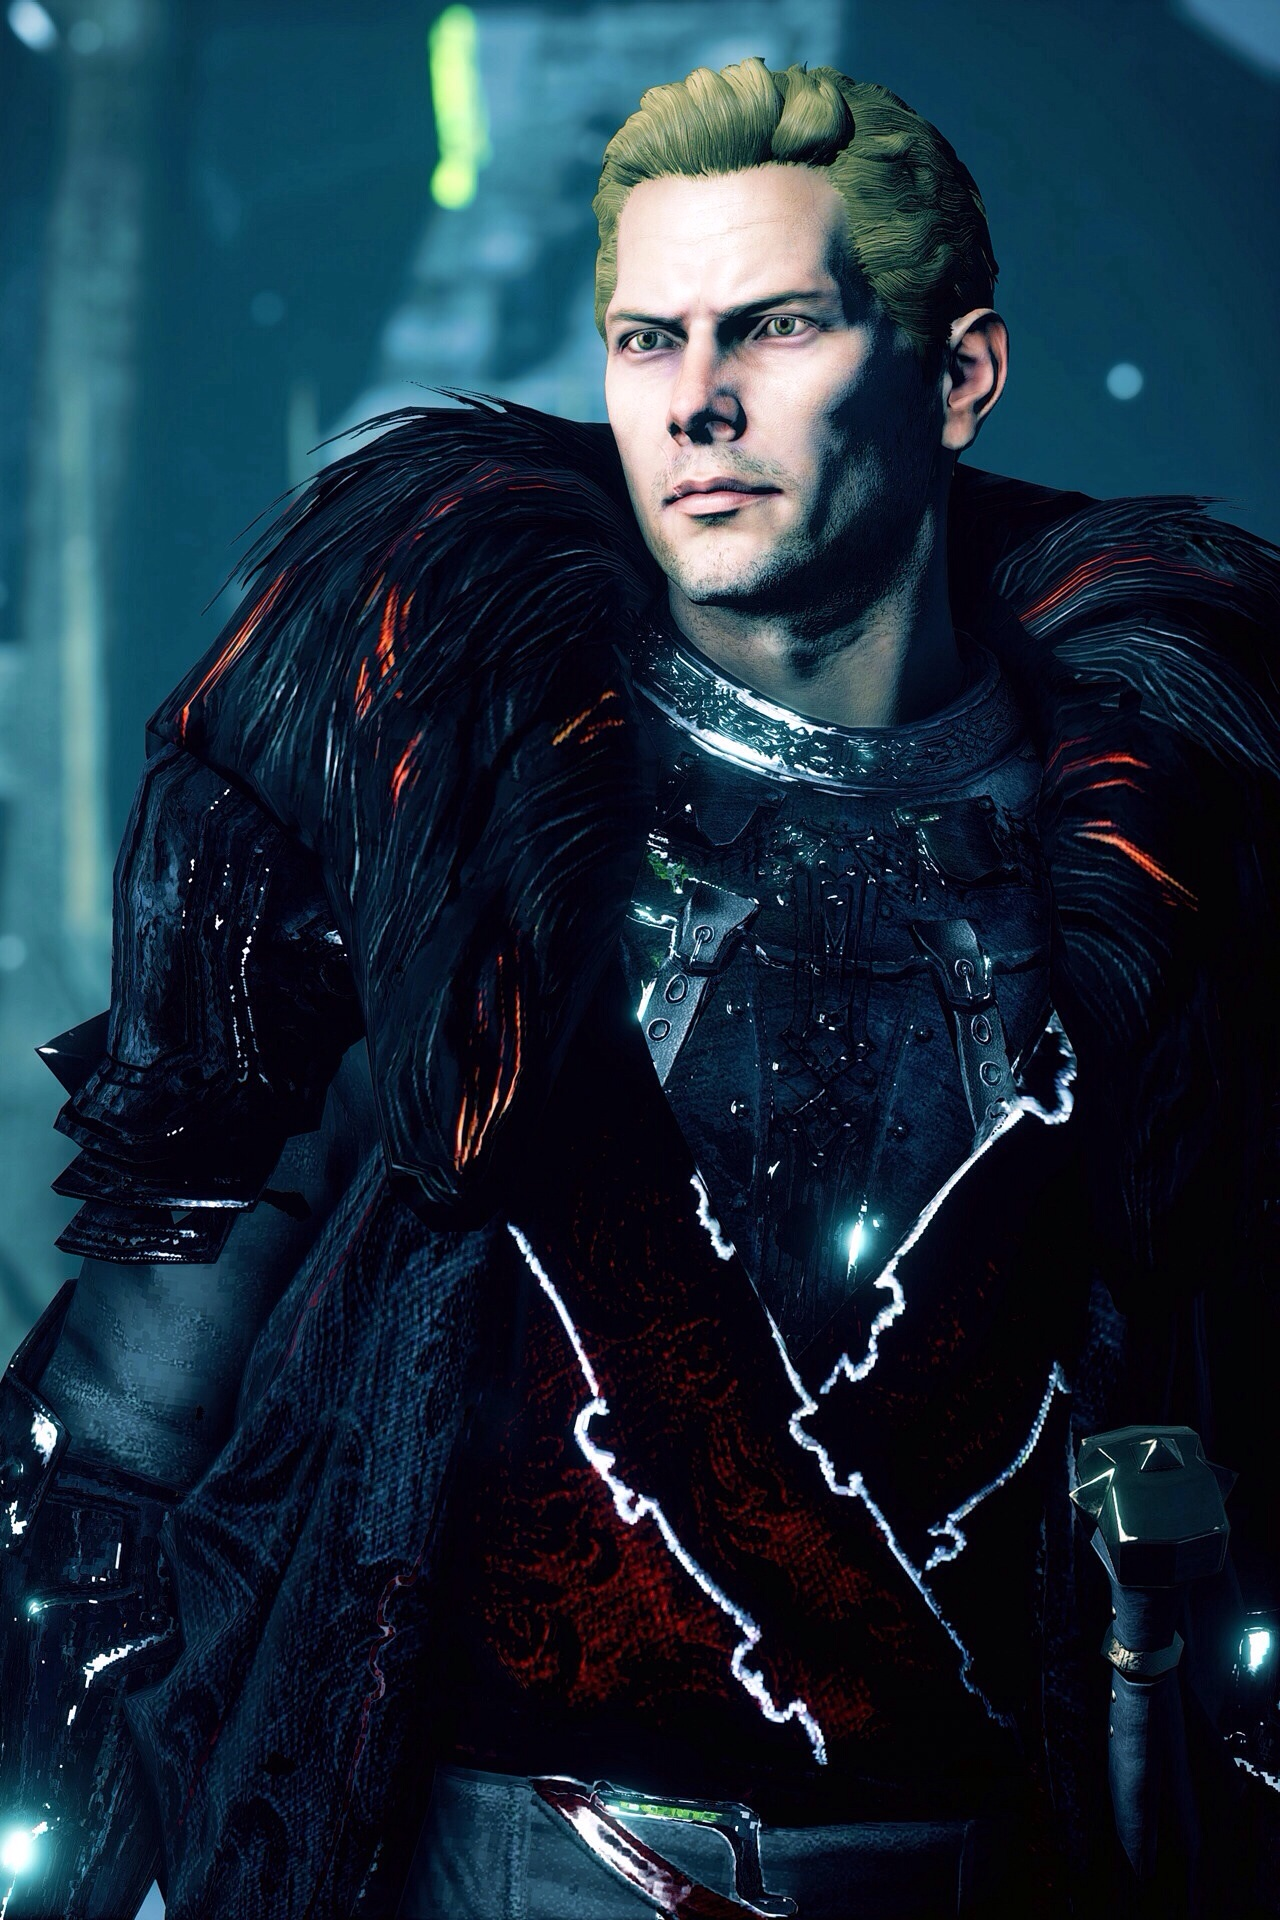 Dragon Age Inquisition Cullen Rutherford Photo 38670369 Fanpop